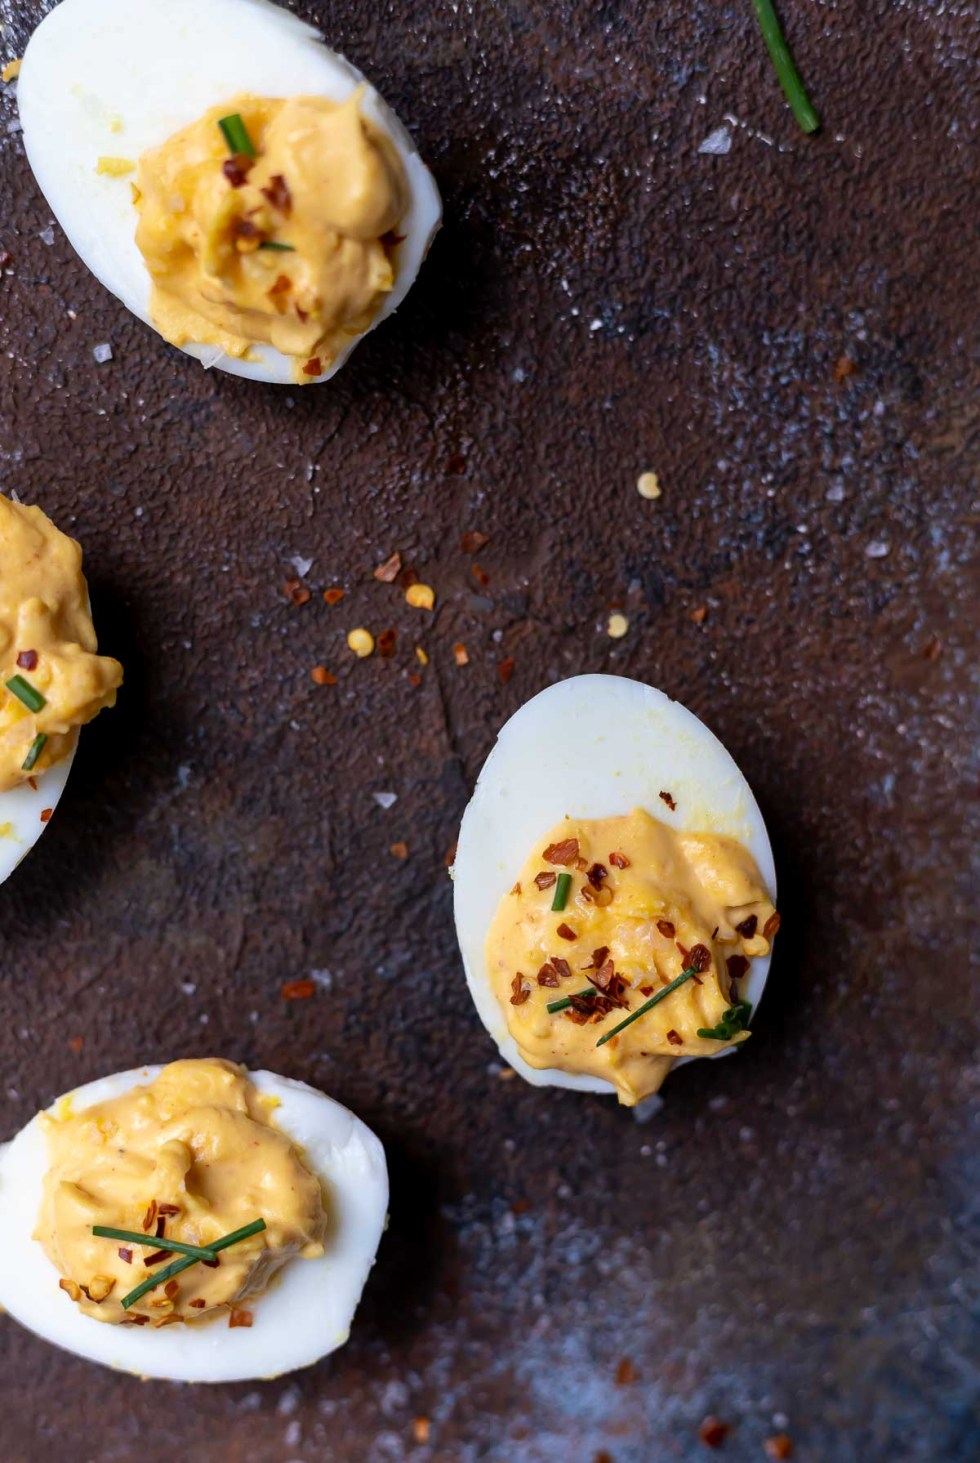 spicy deviled eggs topped with chili flakes and chives